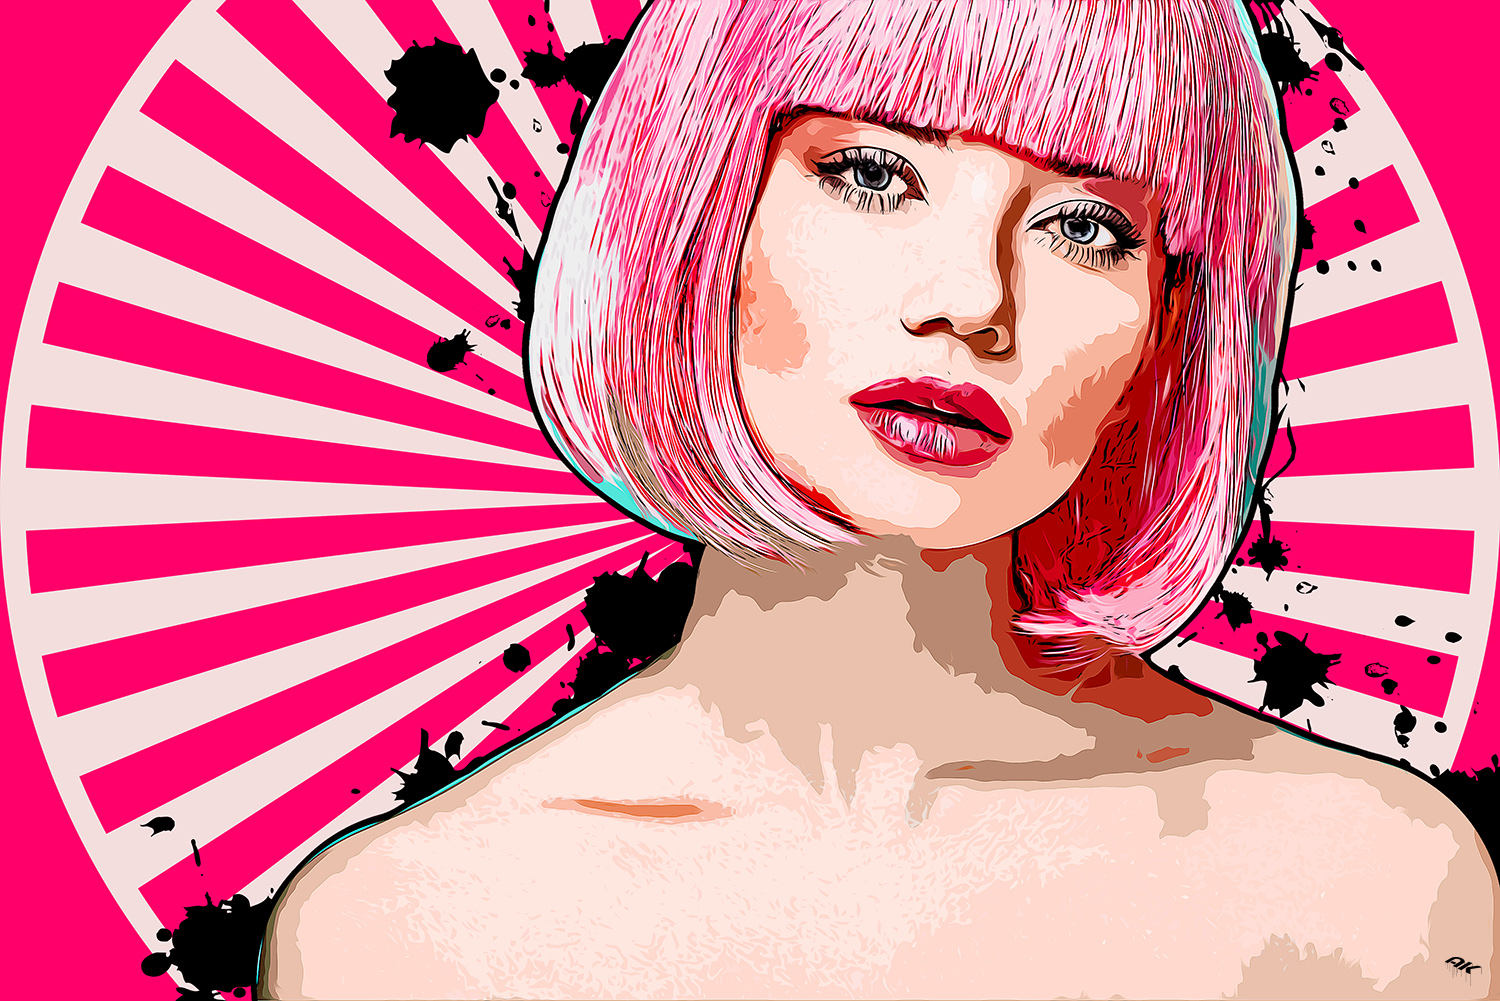 attractive young woman with pink bob cut and stylish makeup look